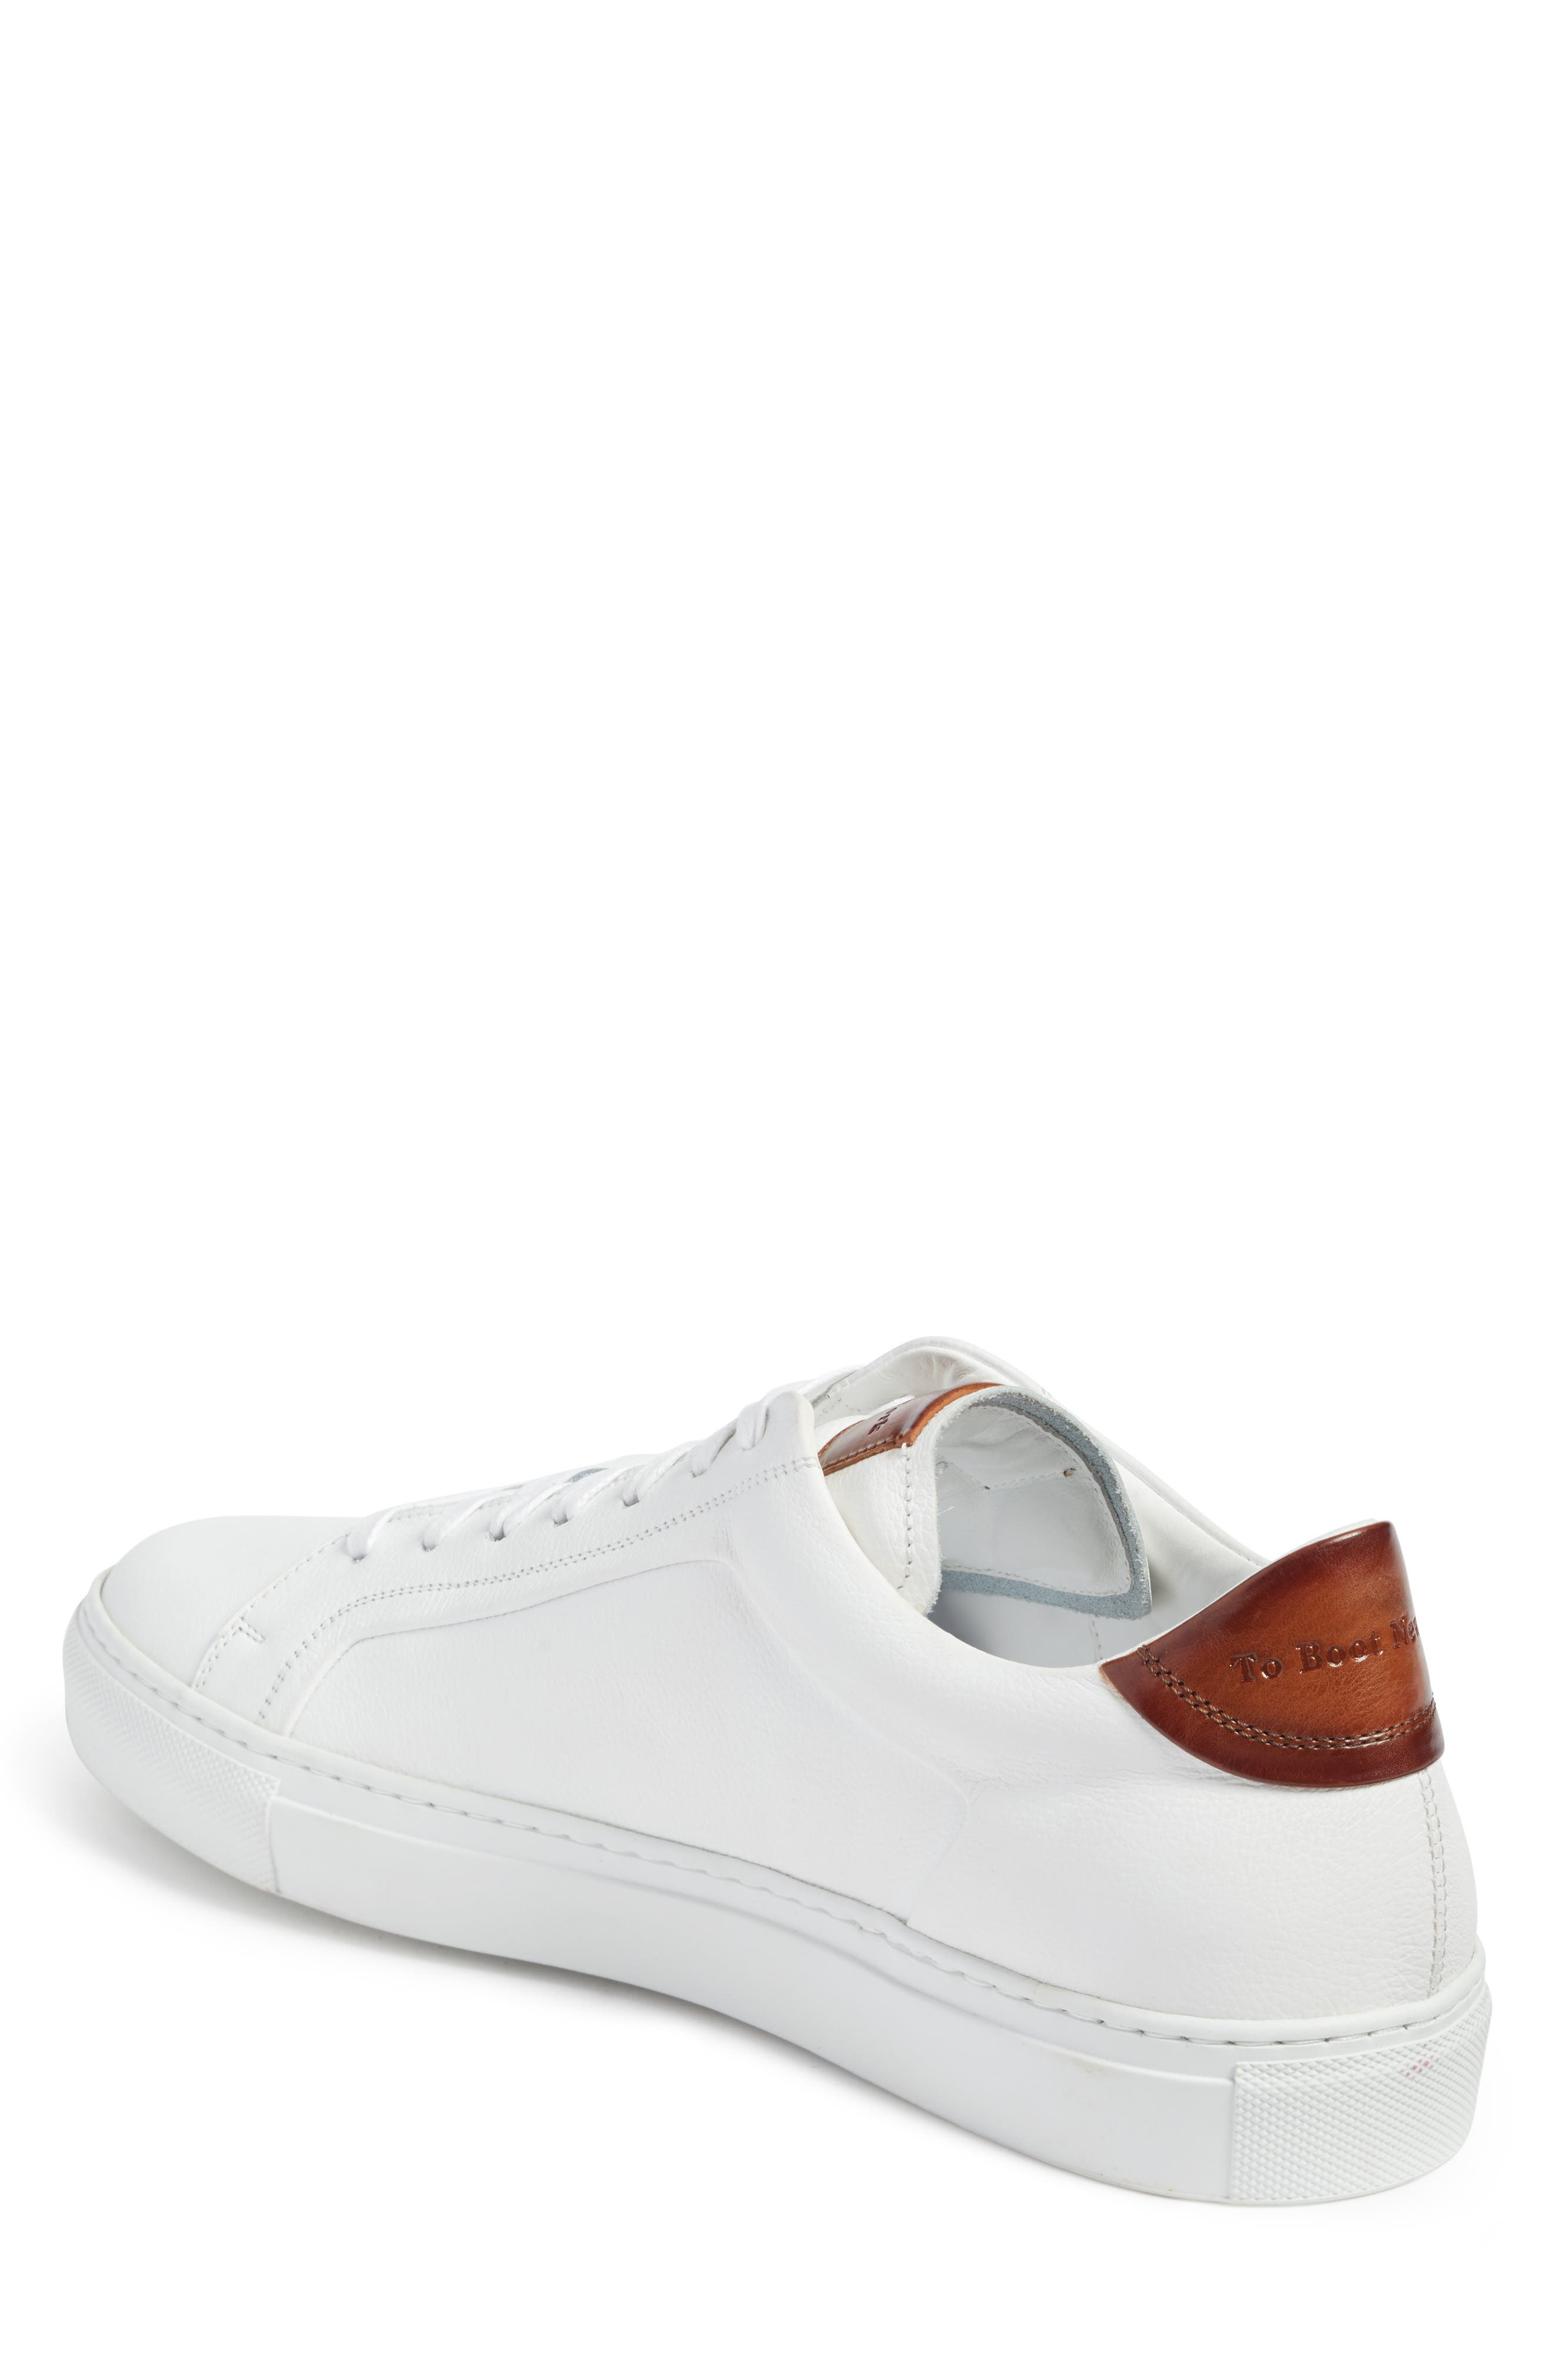 Carlin Sneaker,                             Alternate thumbnail 2, color,                             White/ Tan Leather